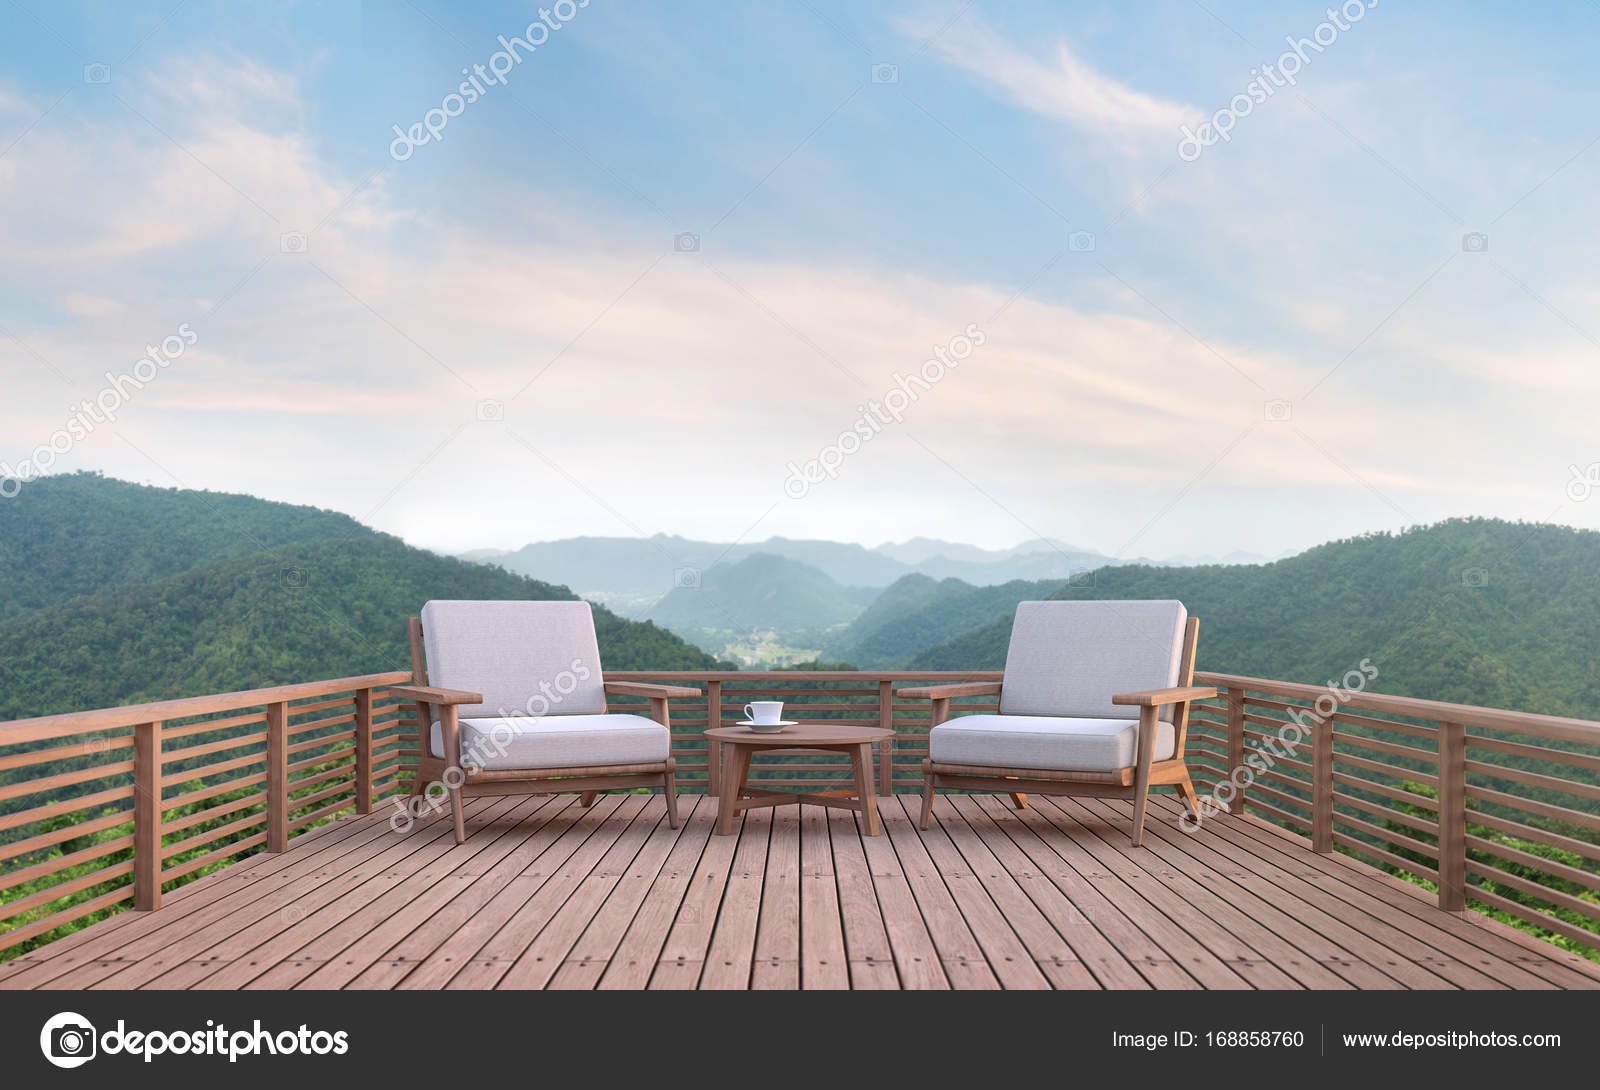 Wood Balcony With Mountain View 3d Rendering Image. There Are Wood  Floor.Furnished With Fabric And Wooden Furniture. There Are Wooden Railing  Overlooking ...